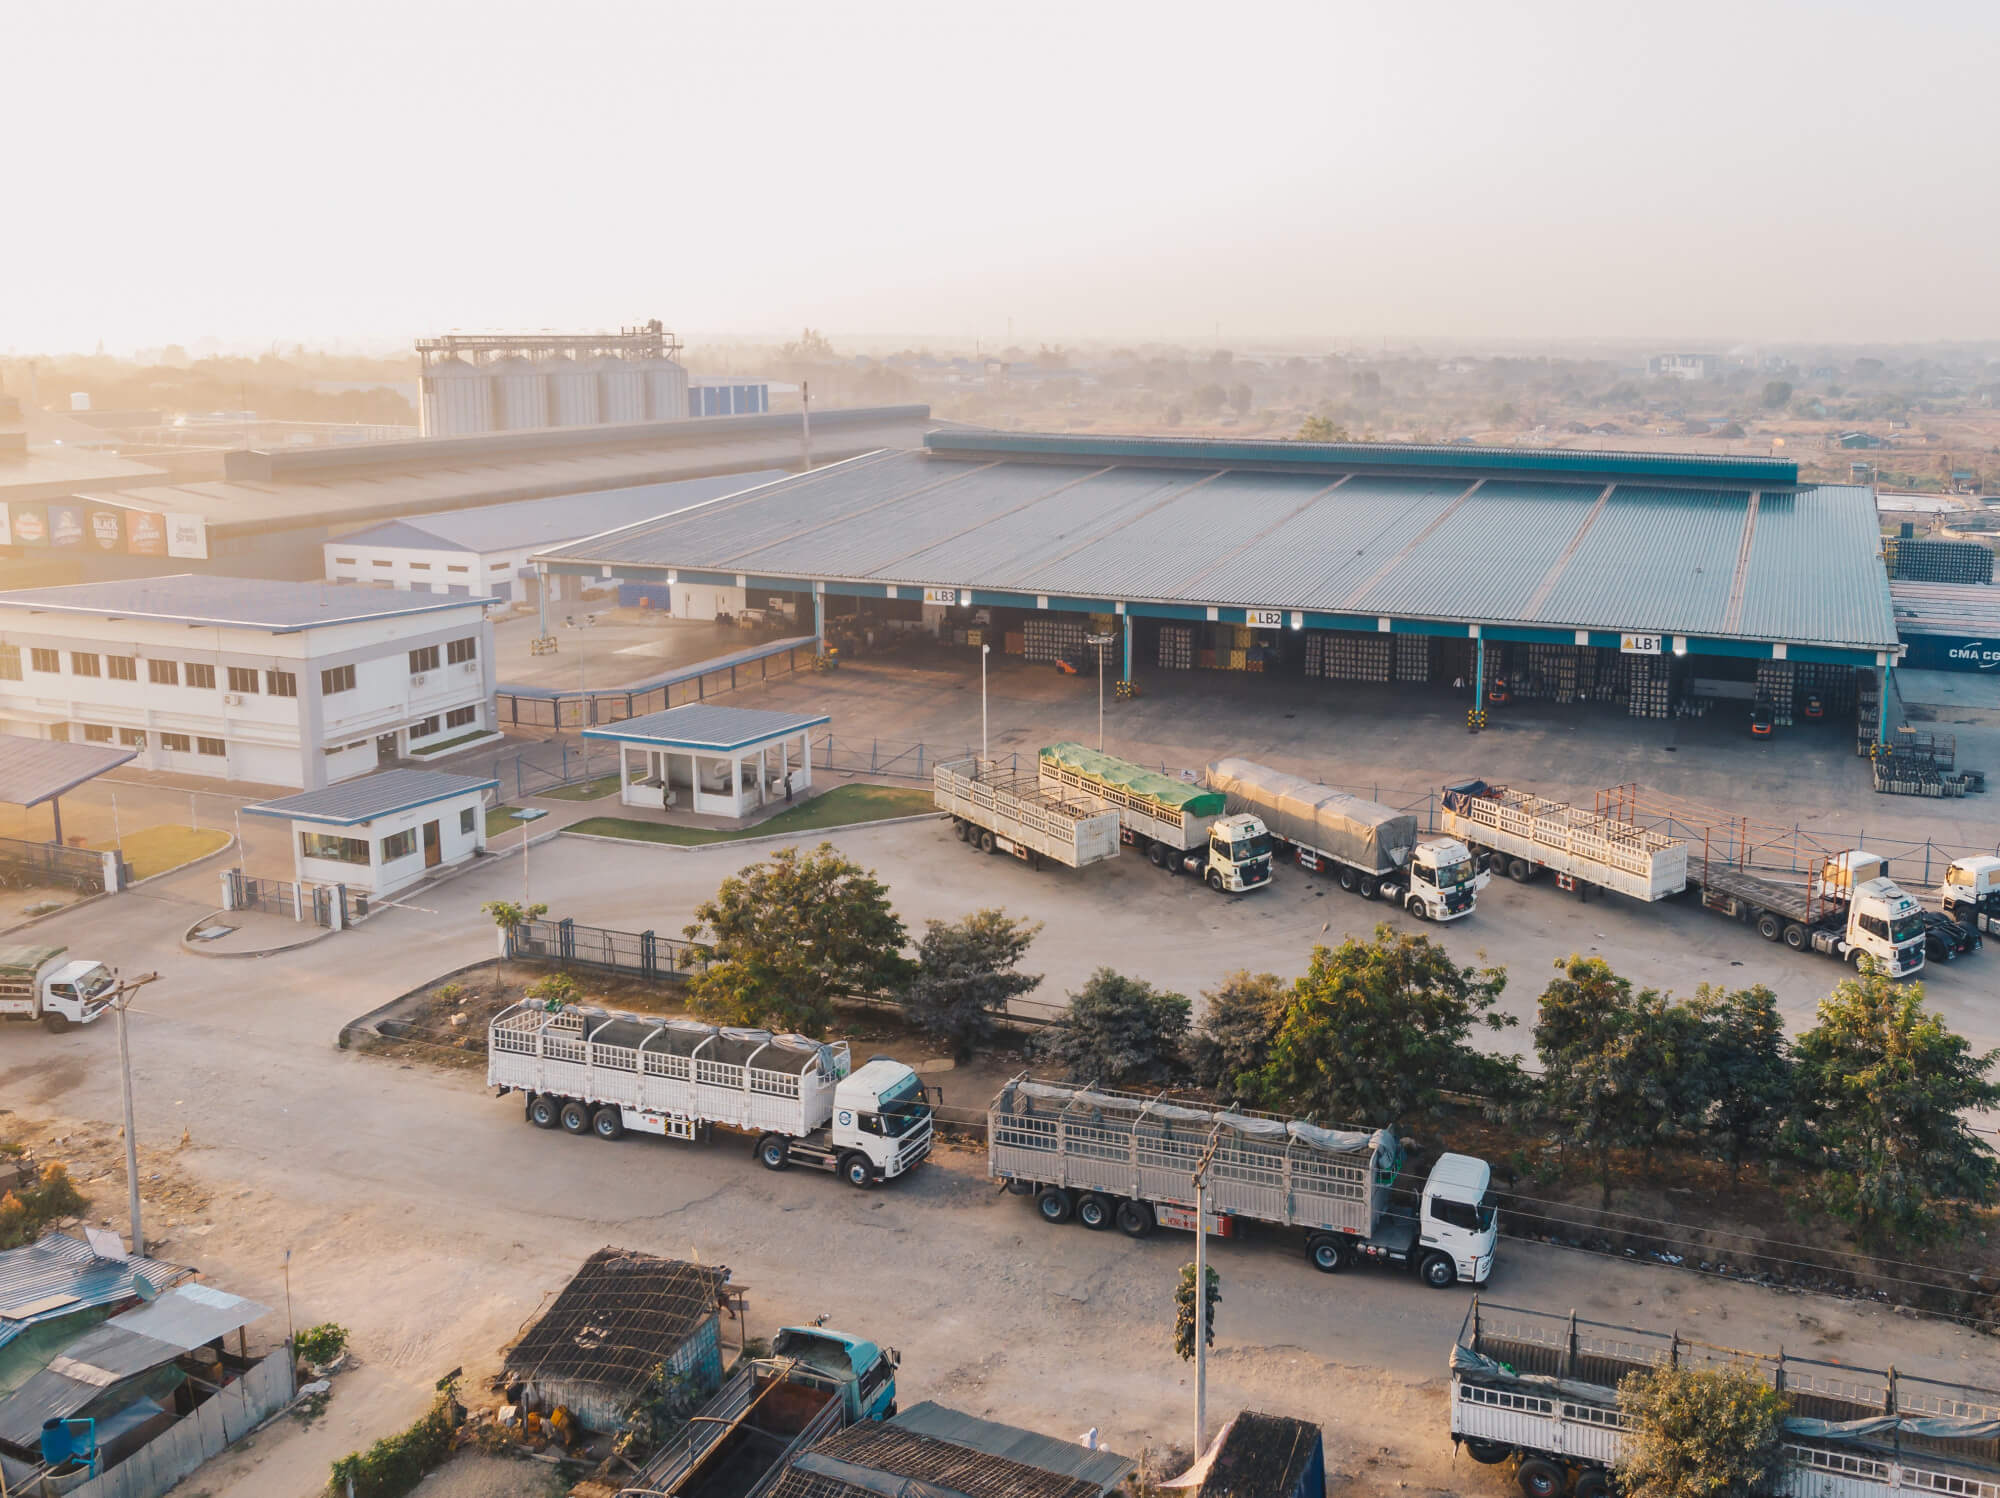 aerial-view-of-factory-trucks-parked-near-the-warehouse-at-daytime (1)